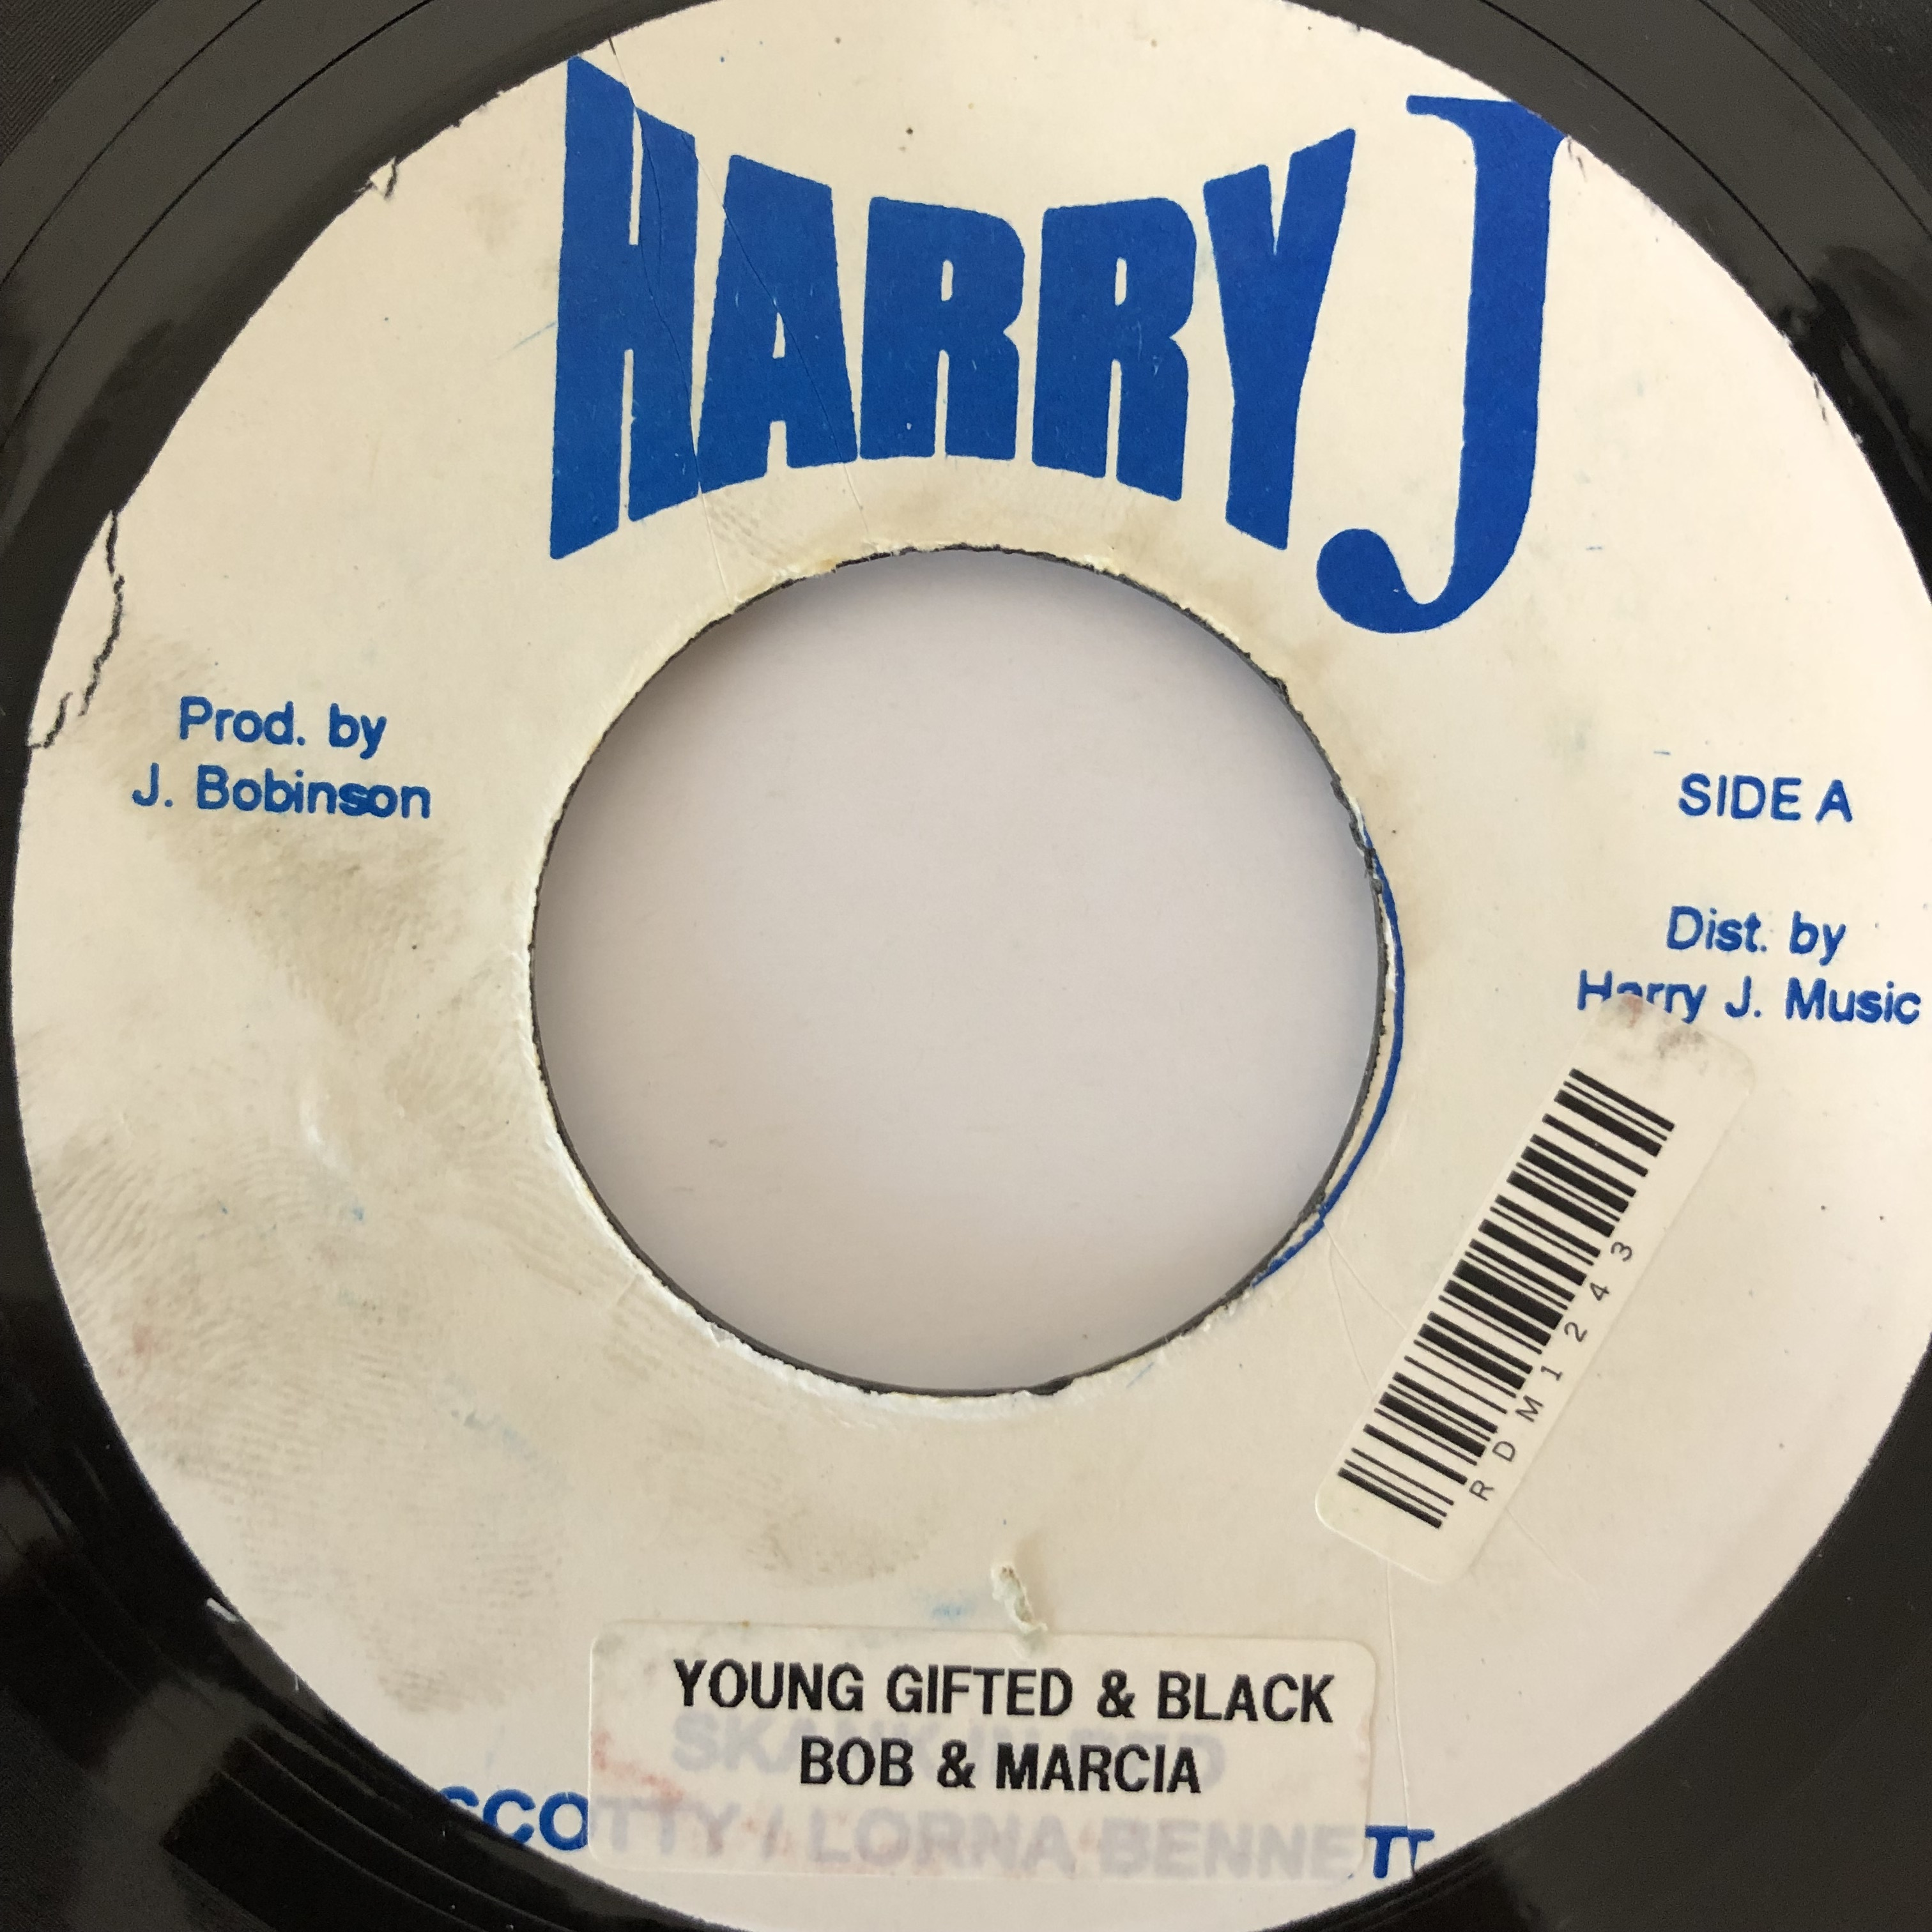 Bob & Marcia - Young Gifted & Black【7-20236】